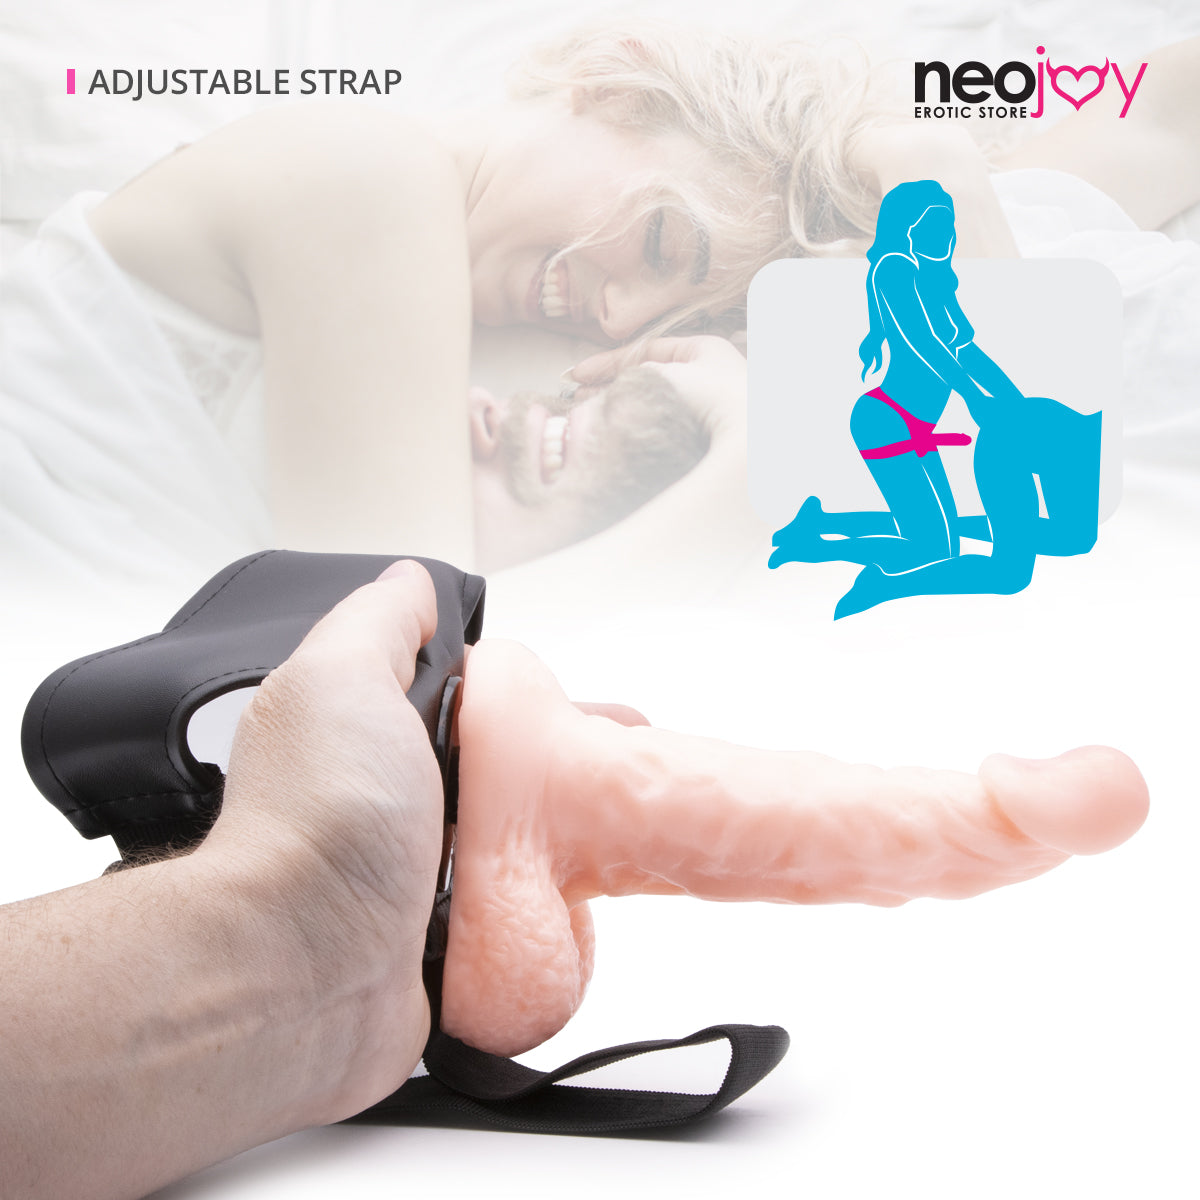 Neojoy - Life-like Harness - Realistic Dildo Strap-On Harness - 16cm - 6.29 inch